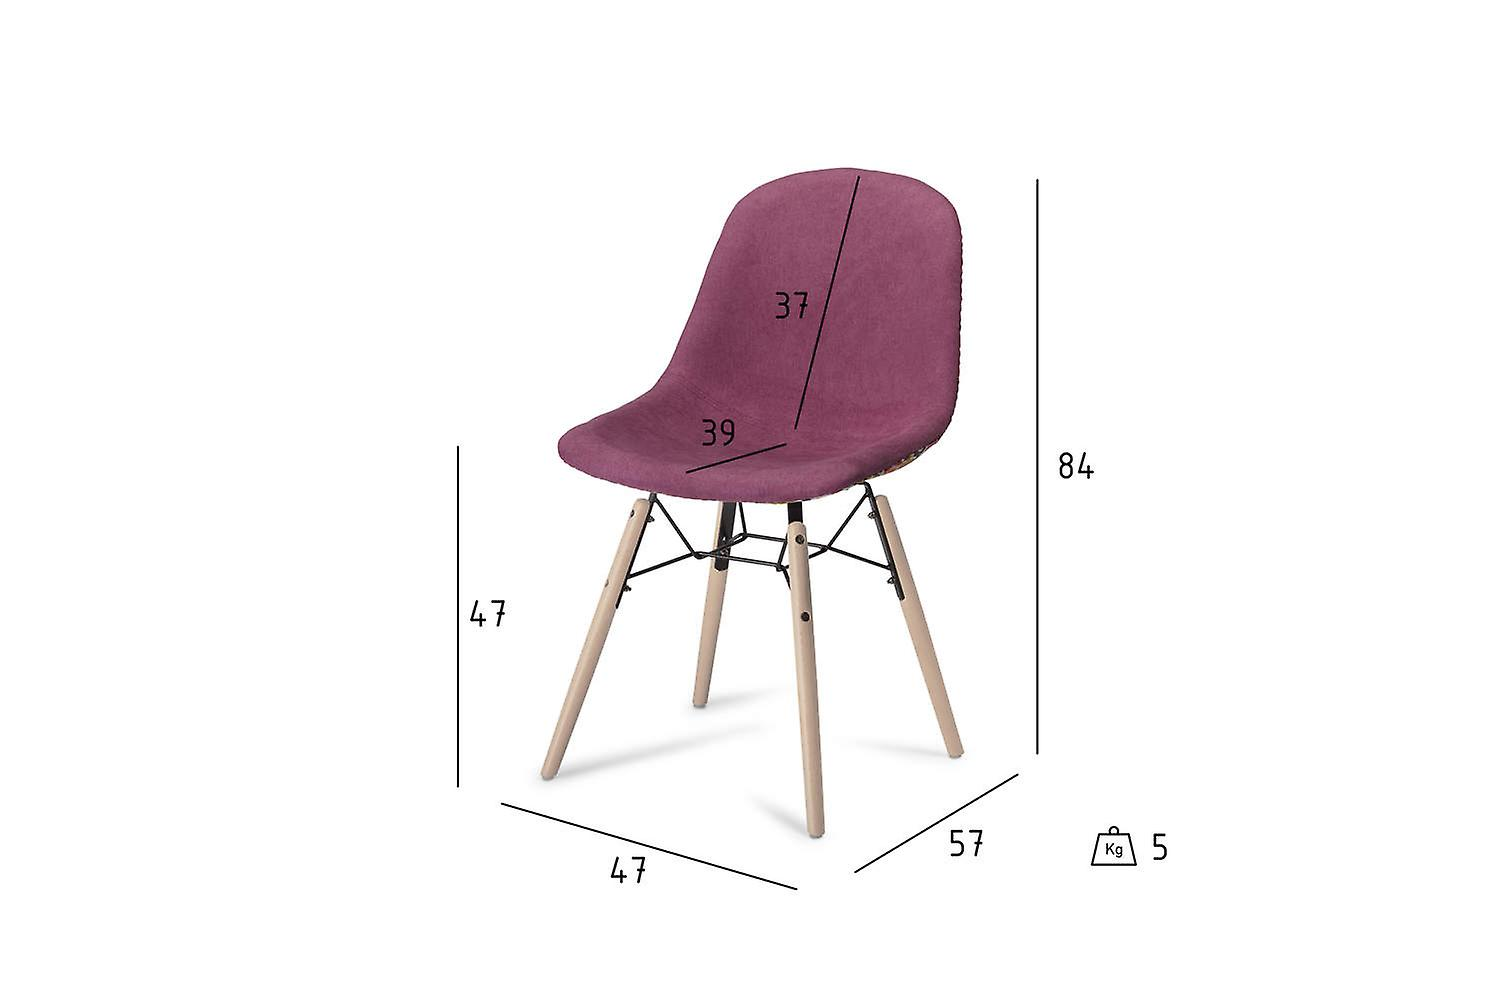 Furnhouse Sun Dining Chair, Pink/Violet, Natural Legs, 47x57x84 cm, Set of 2